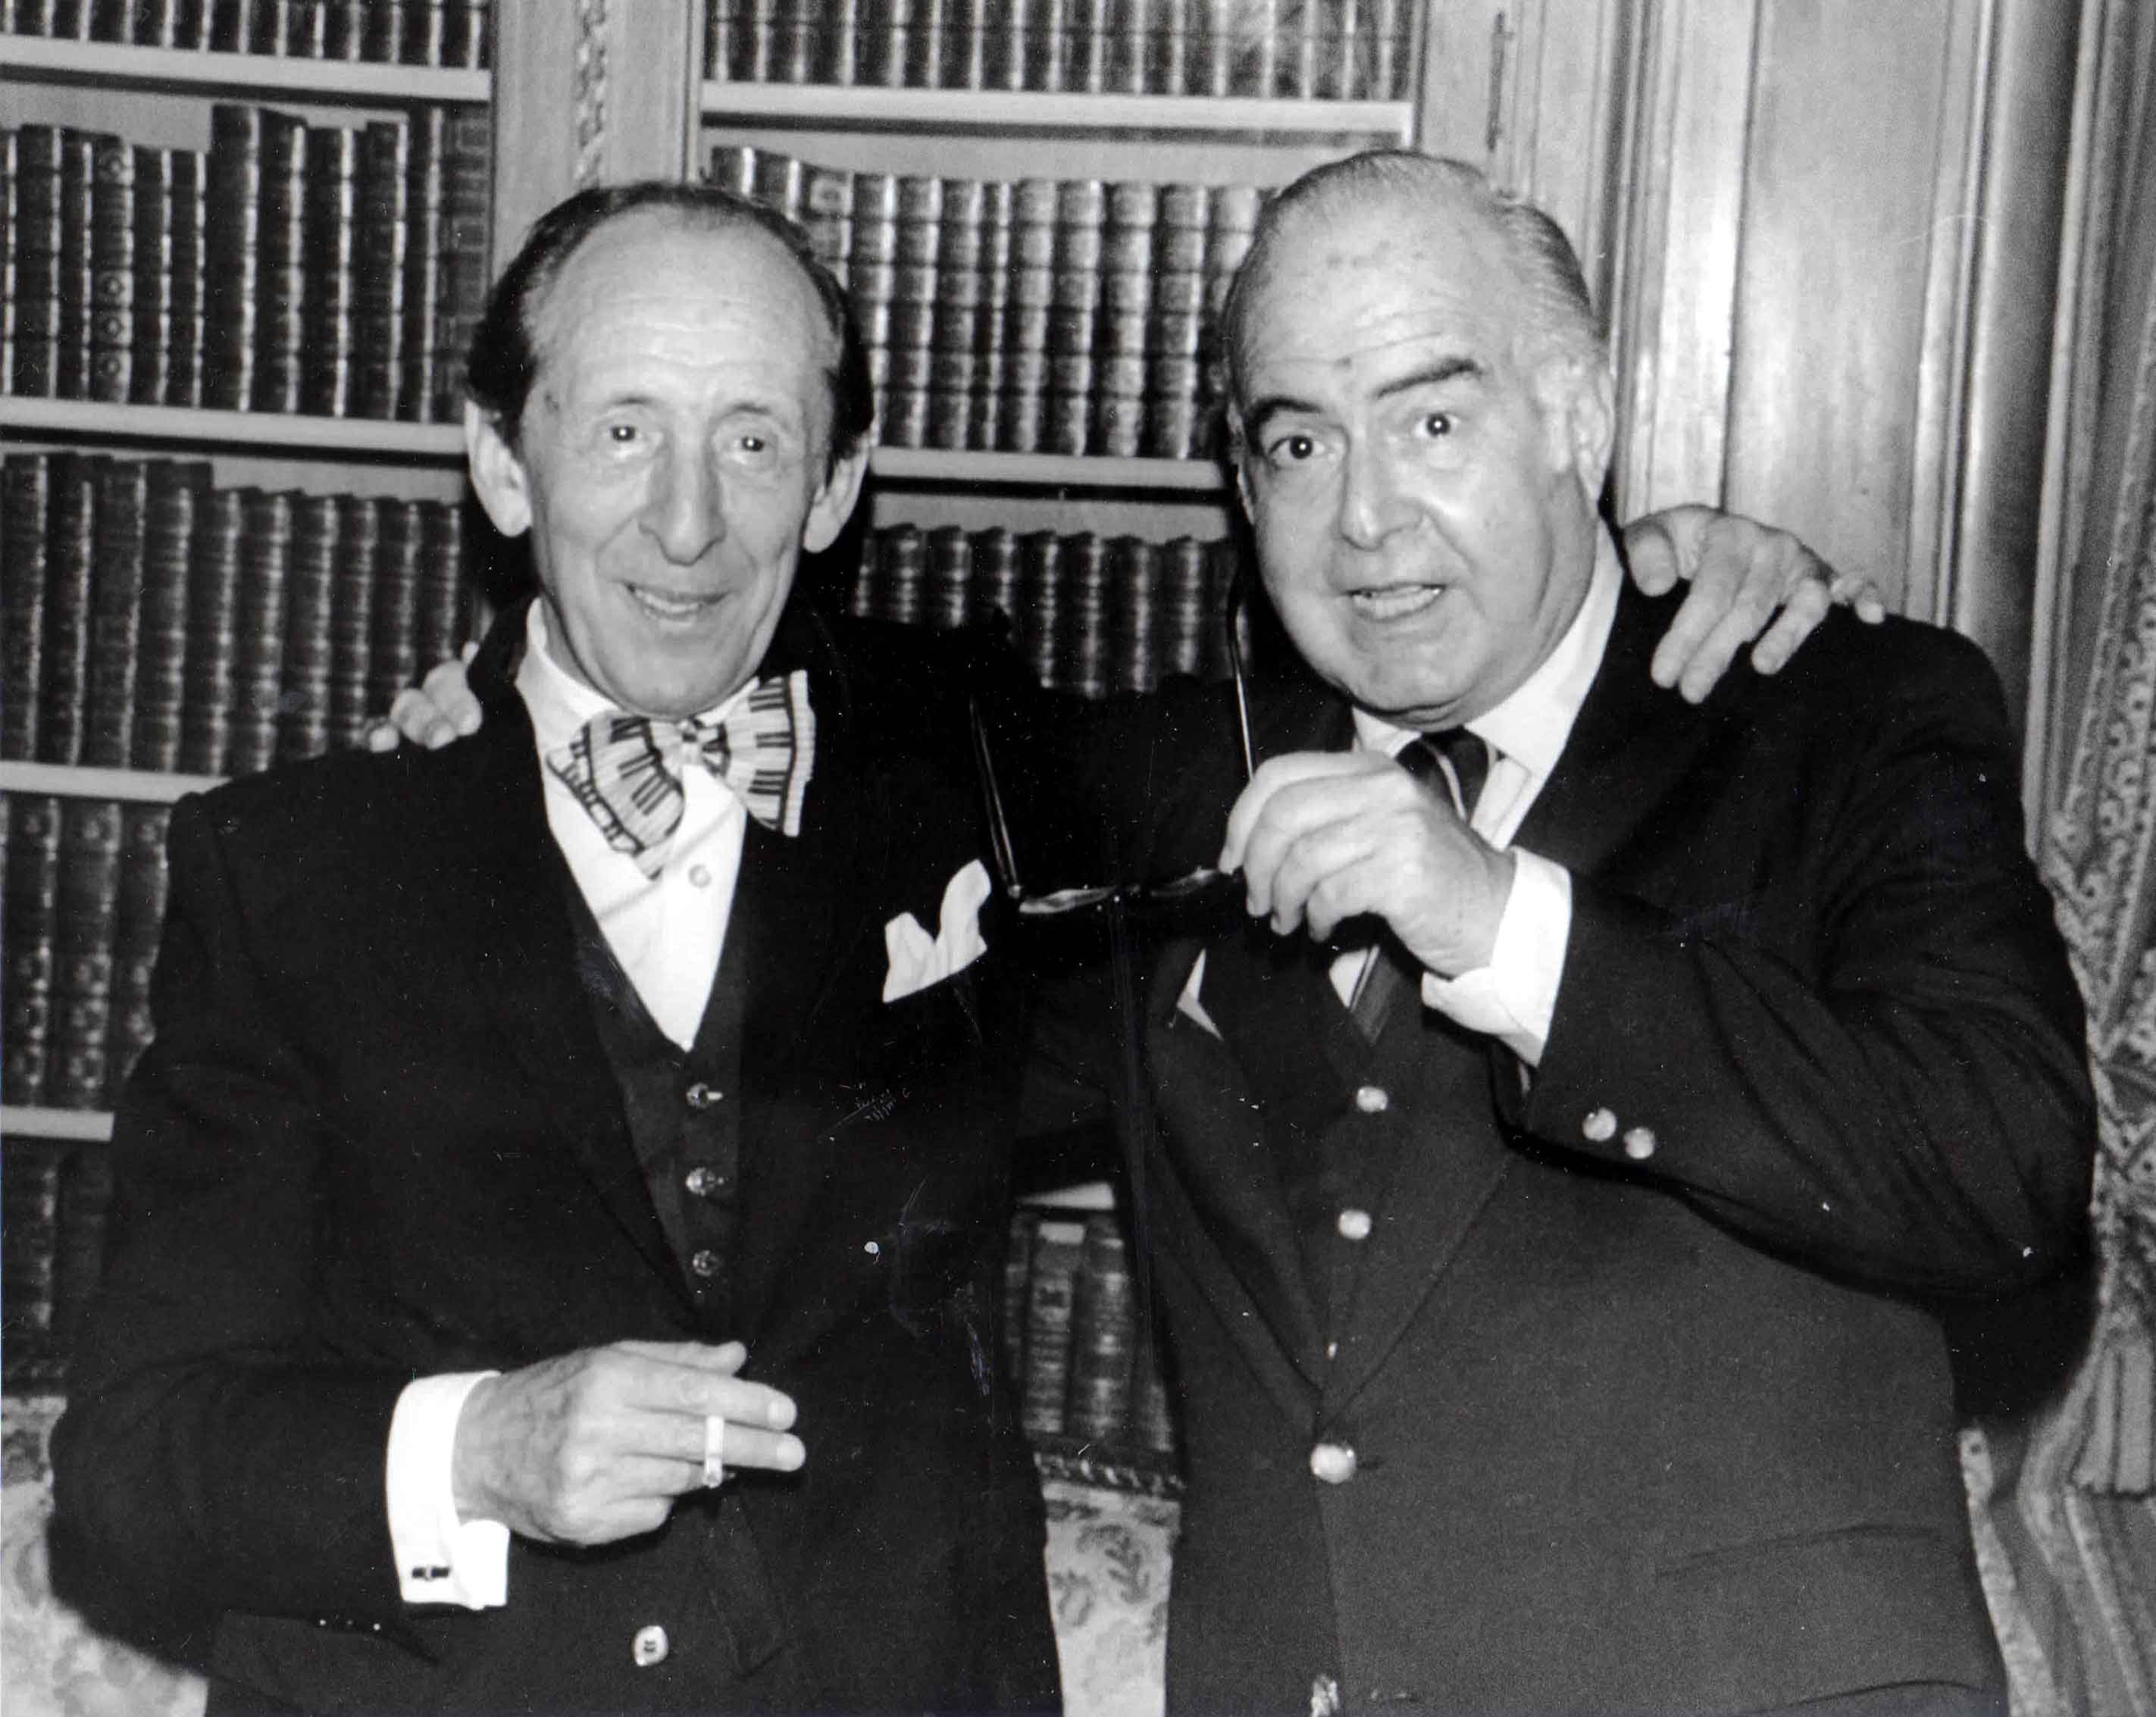 Samuel Barber and Vladimir Horowitz once again reunited.